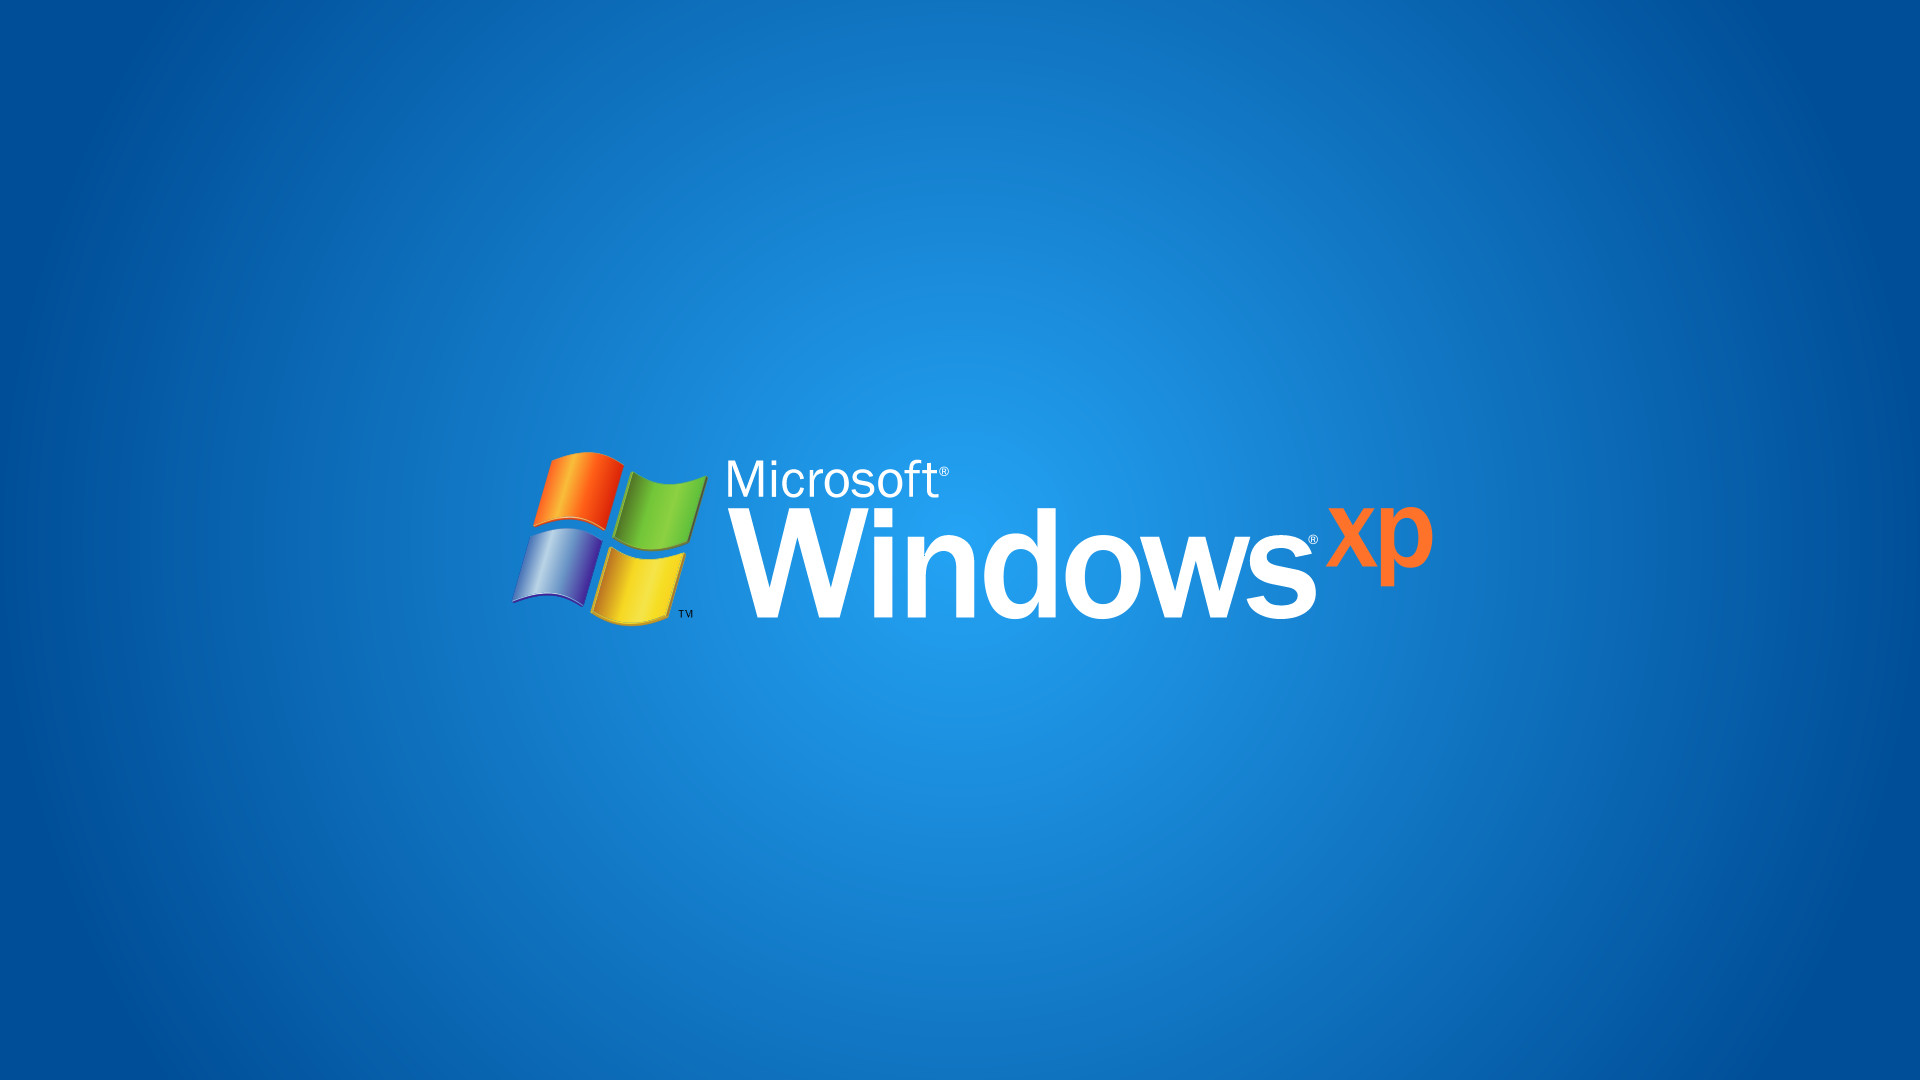 windows xp wallpaper original download